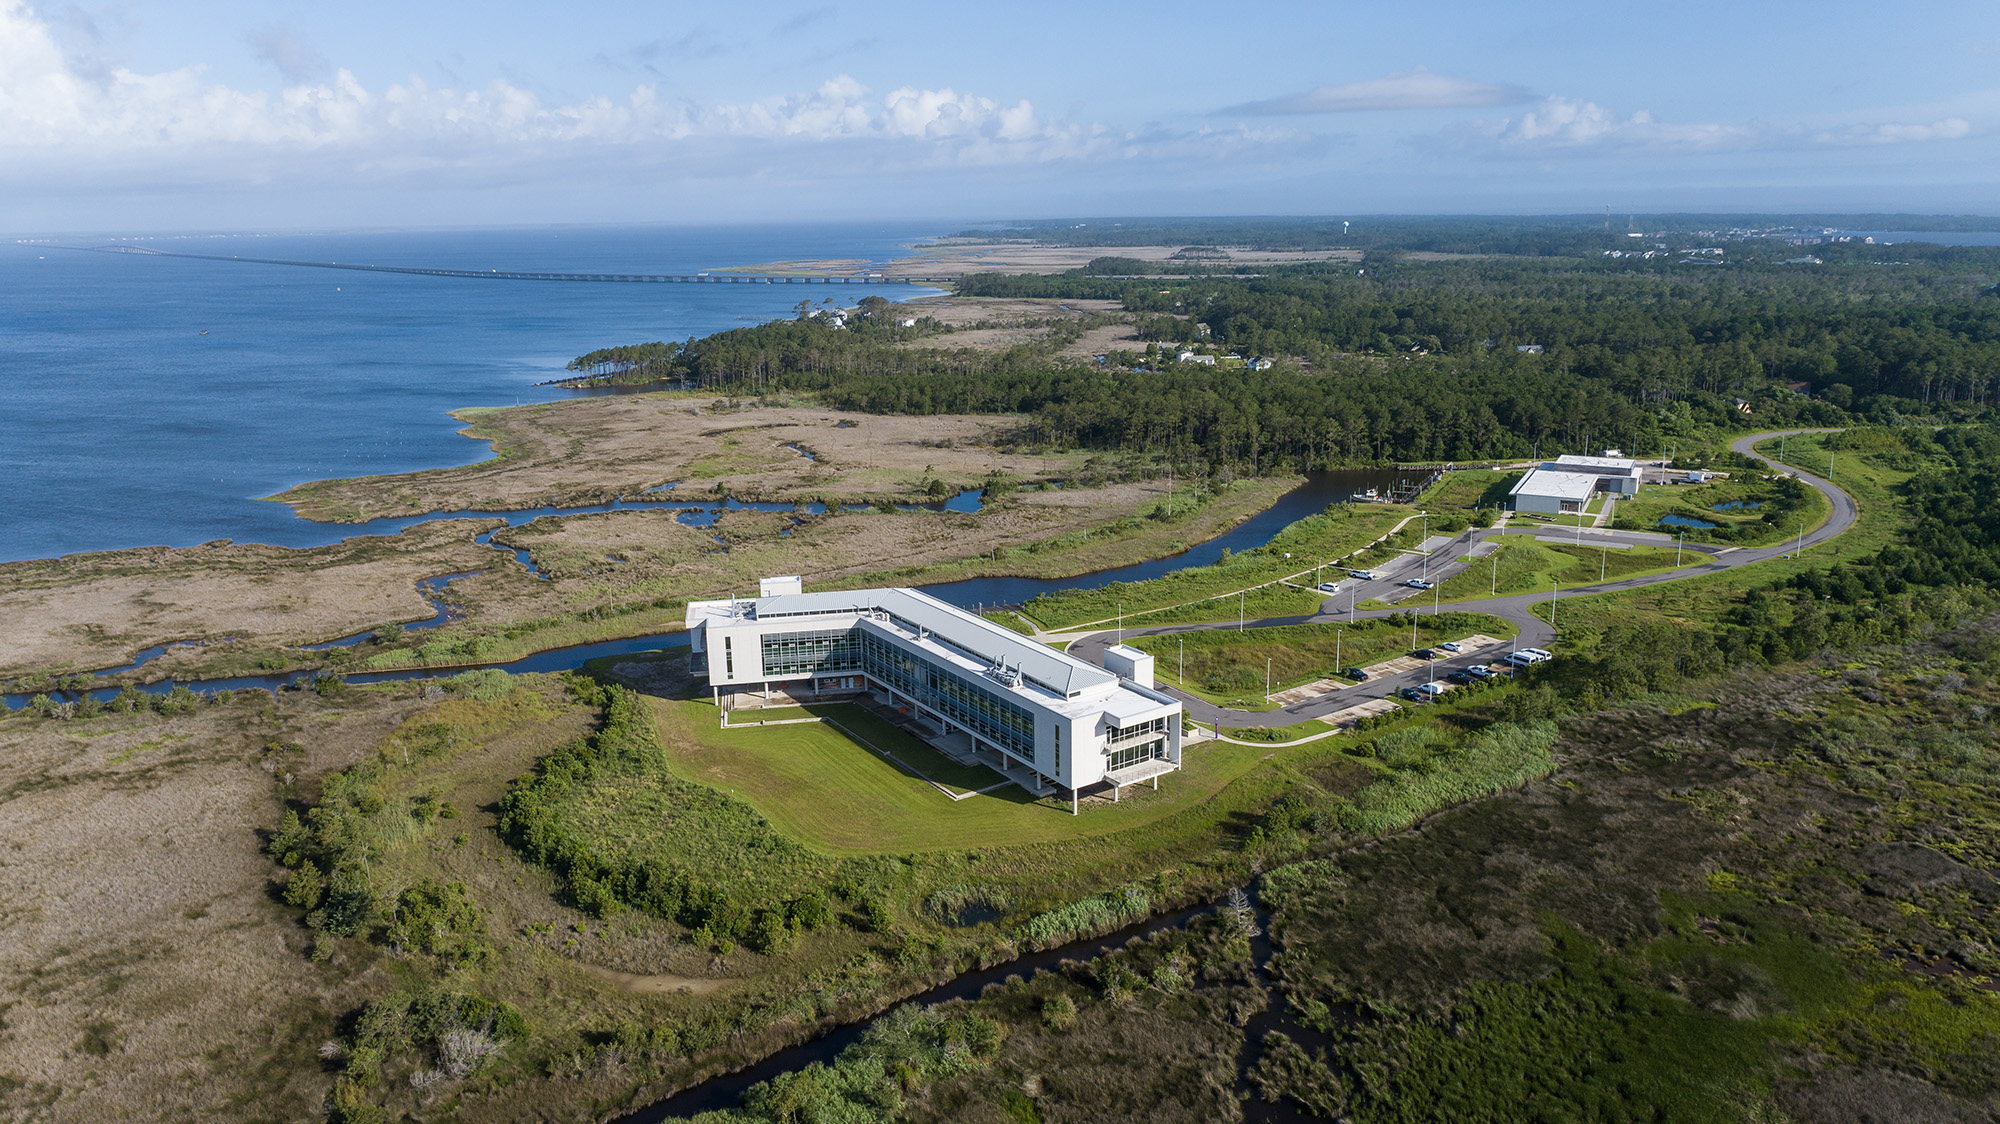 The ECU Outer Banks Campus on Roanoke Island.